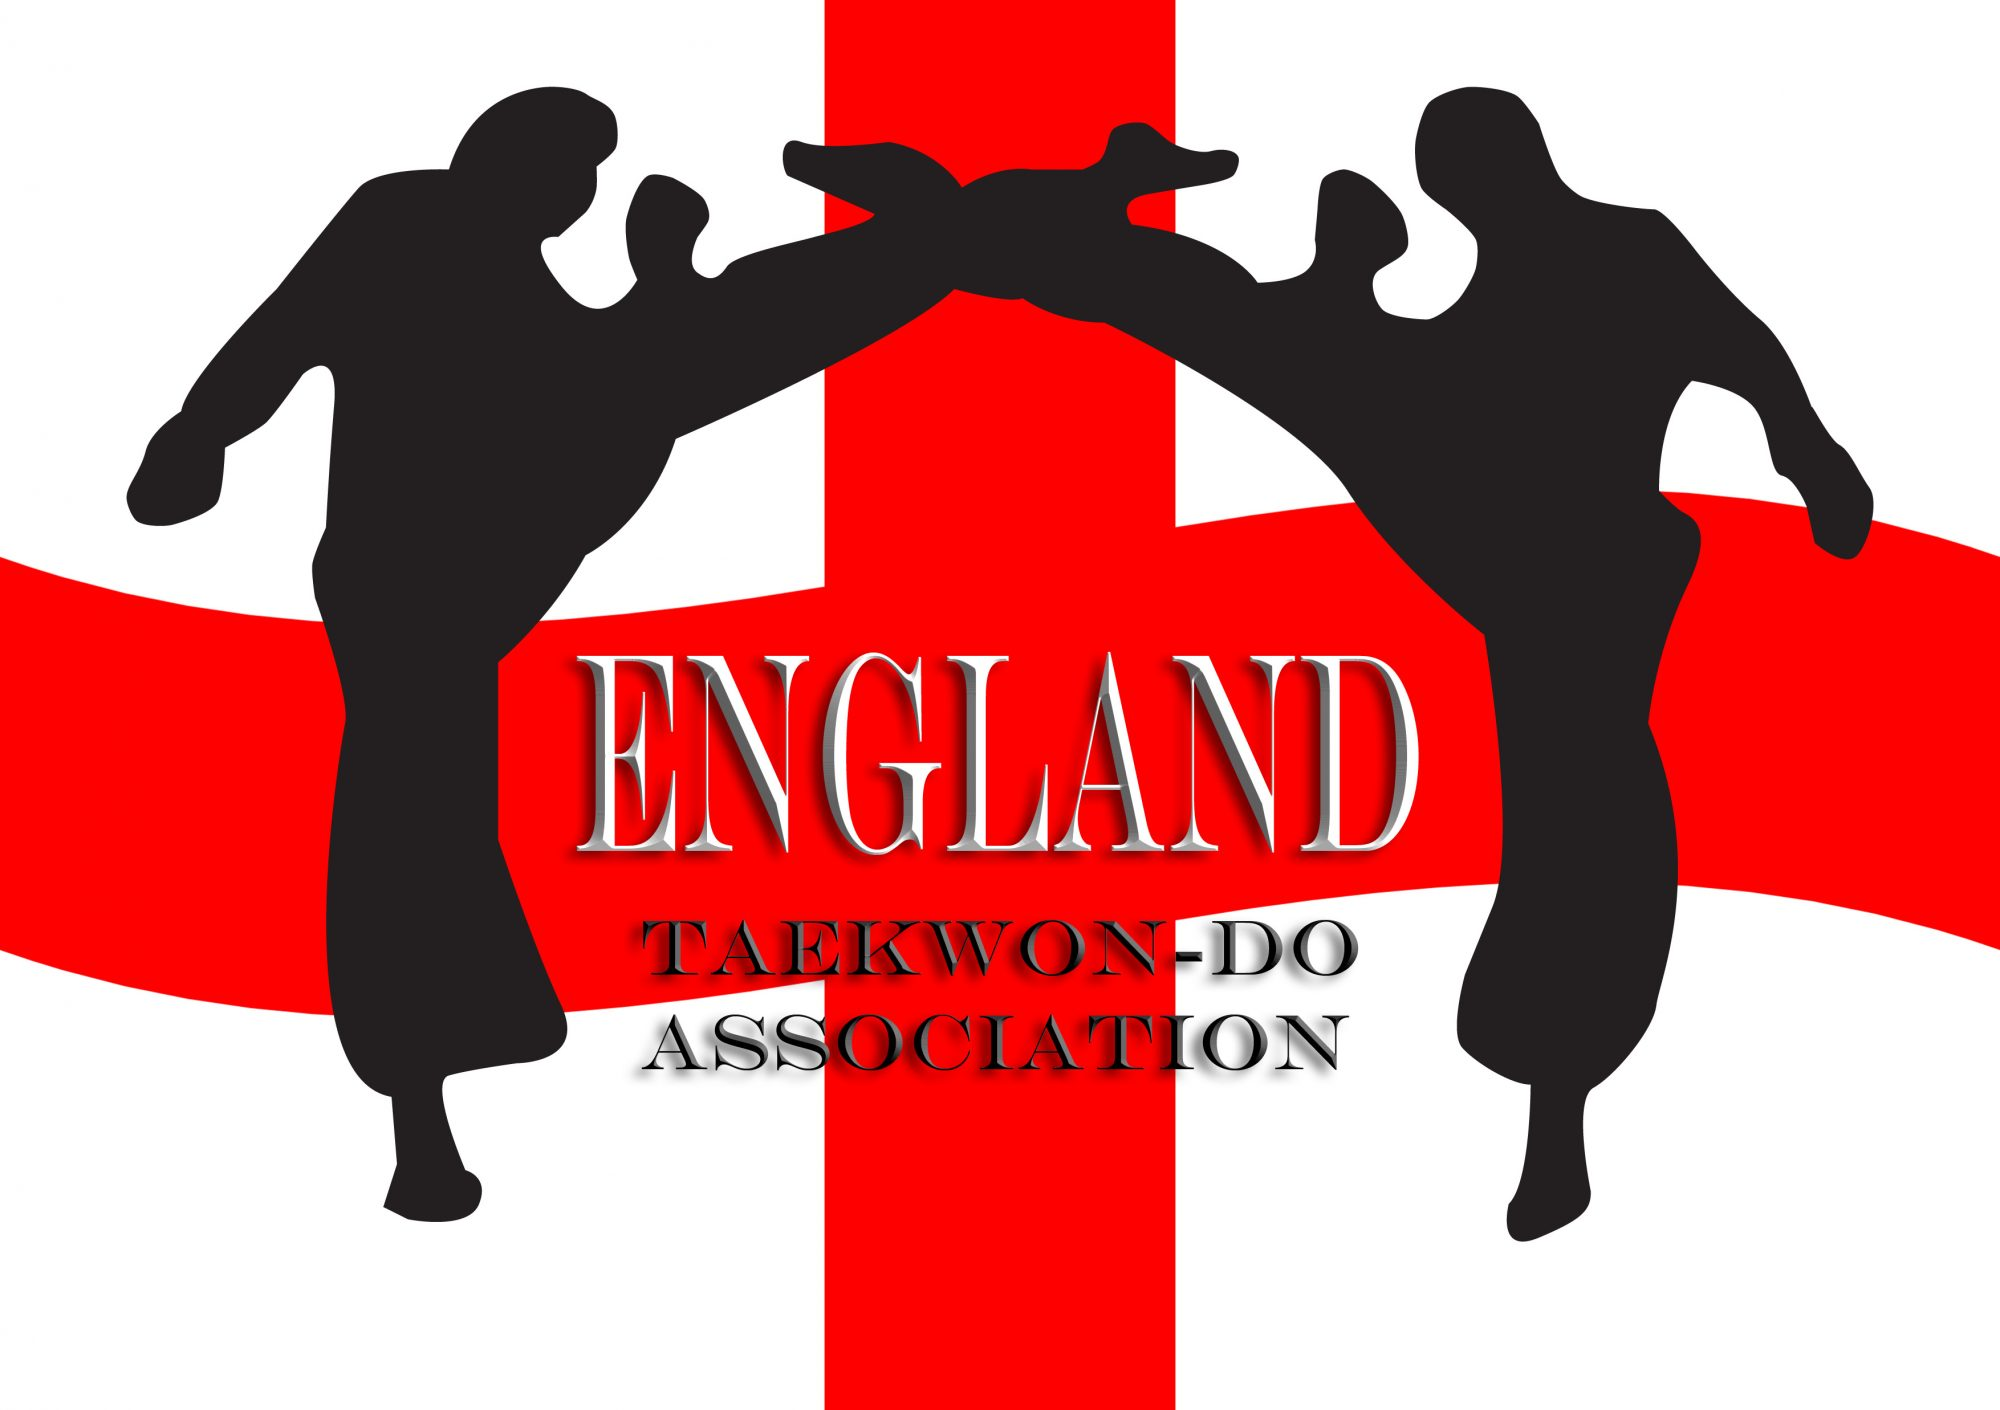 England Taekwon-Do Association